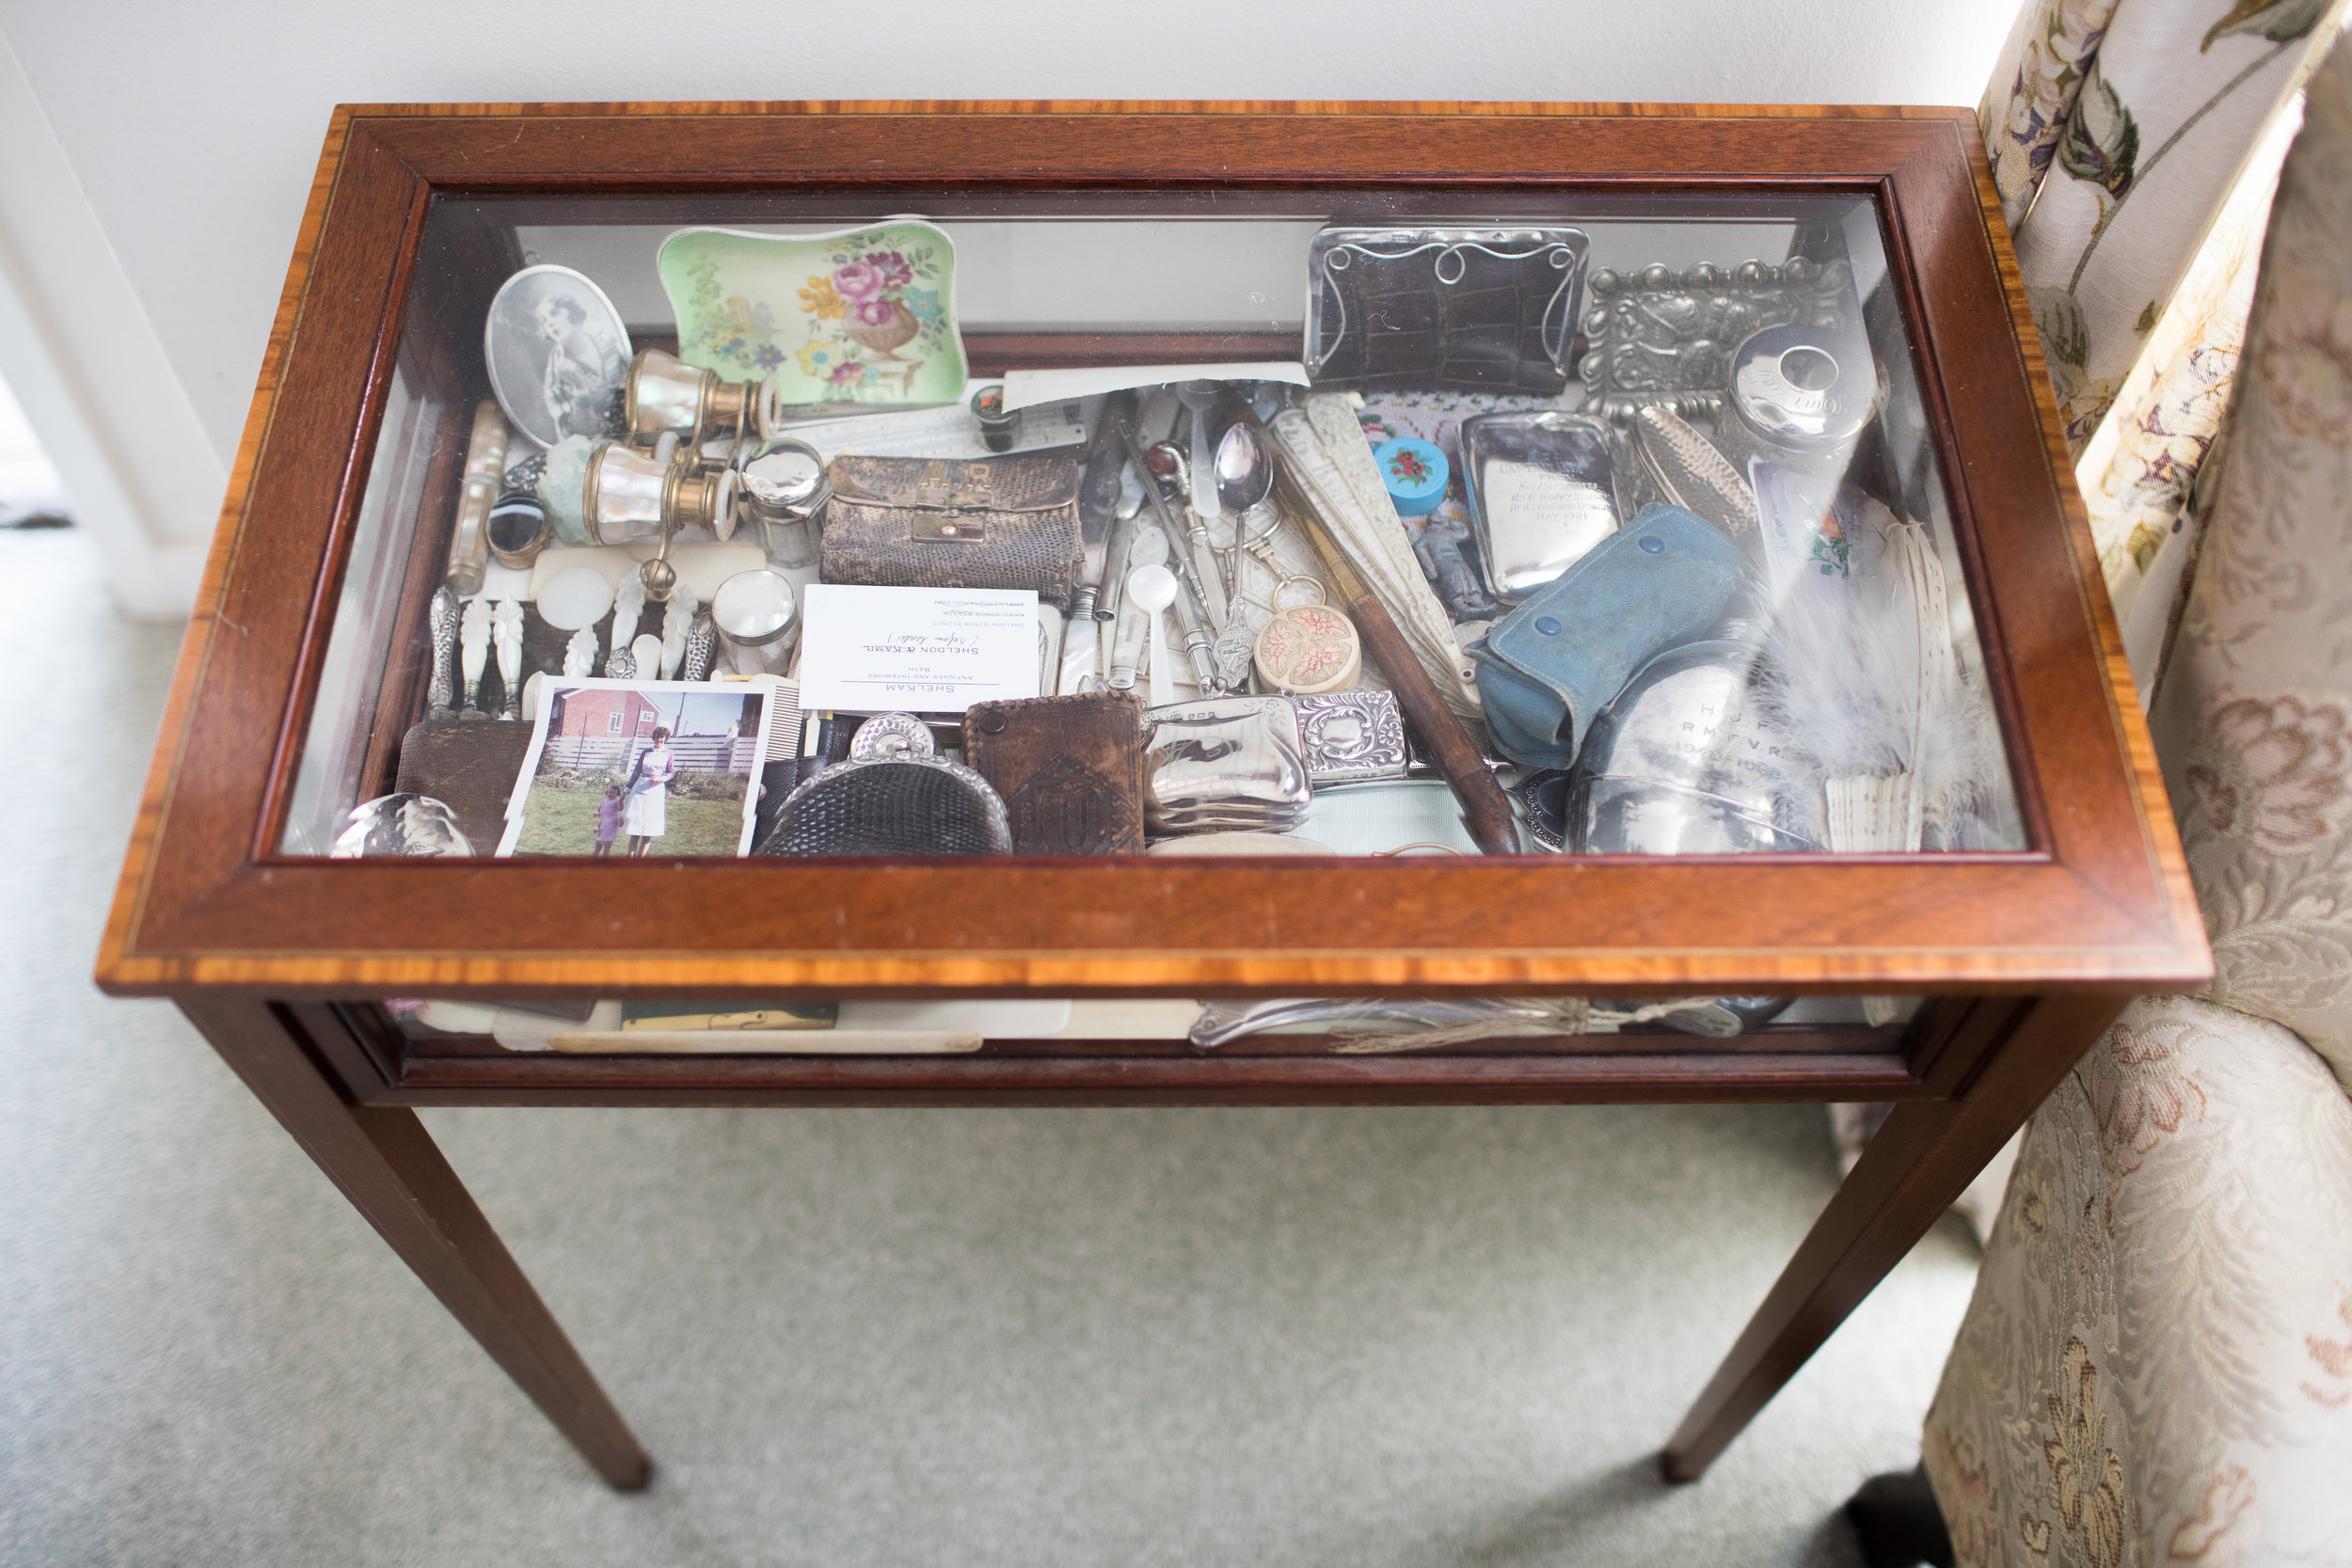 As a child I used to spend hours taking all the little trinkets out of this display case and putting them back in again. vintage tweezers, a clothes brush, old binoculars to take to the opera... This case has such history and everything in it has a story to tell. Maybe I should shoot everything individually along with its story?